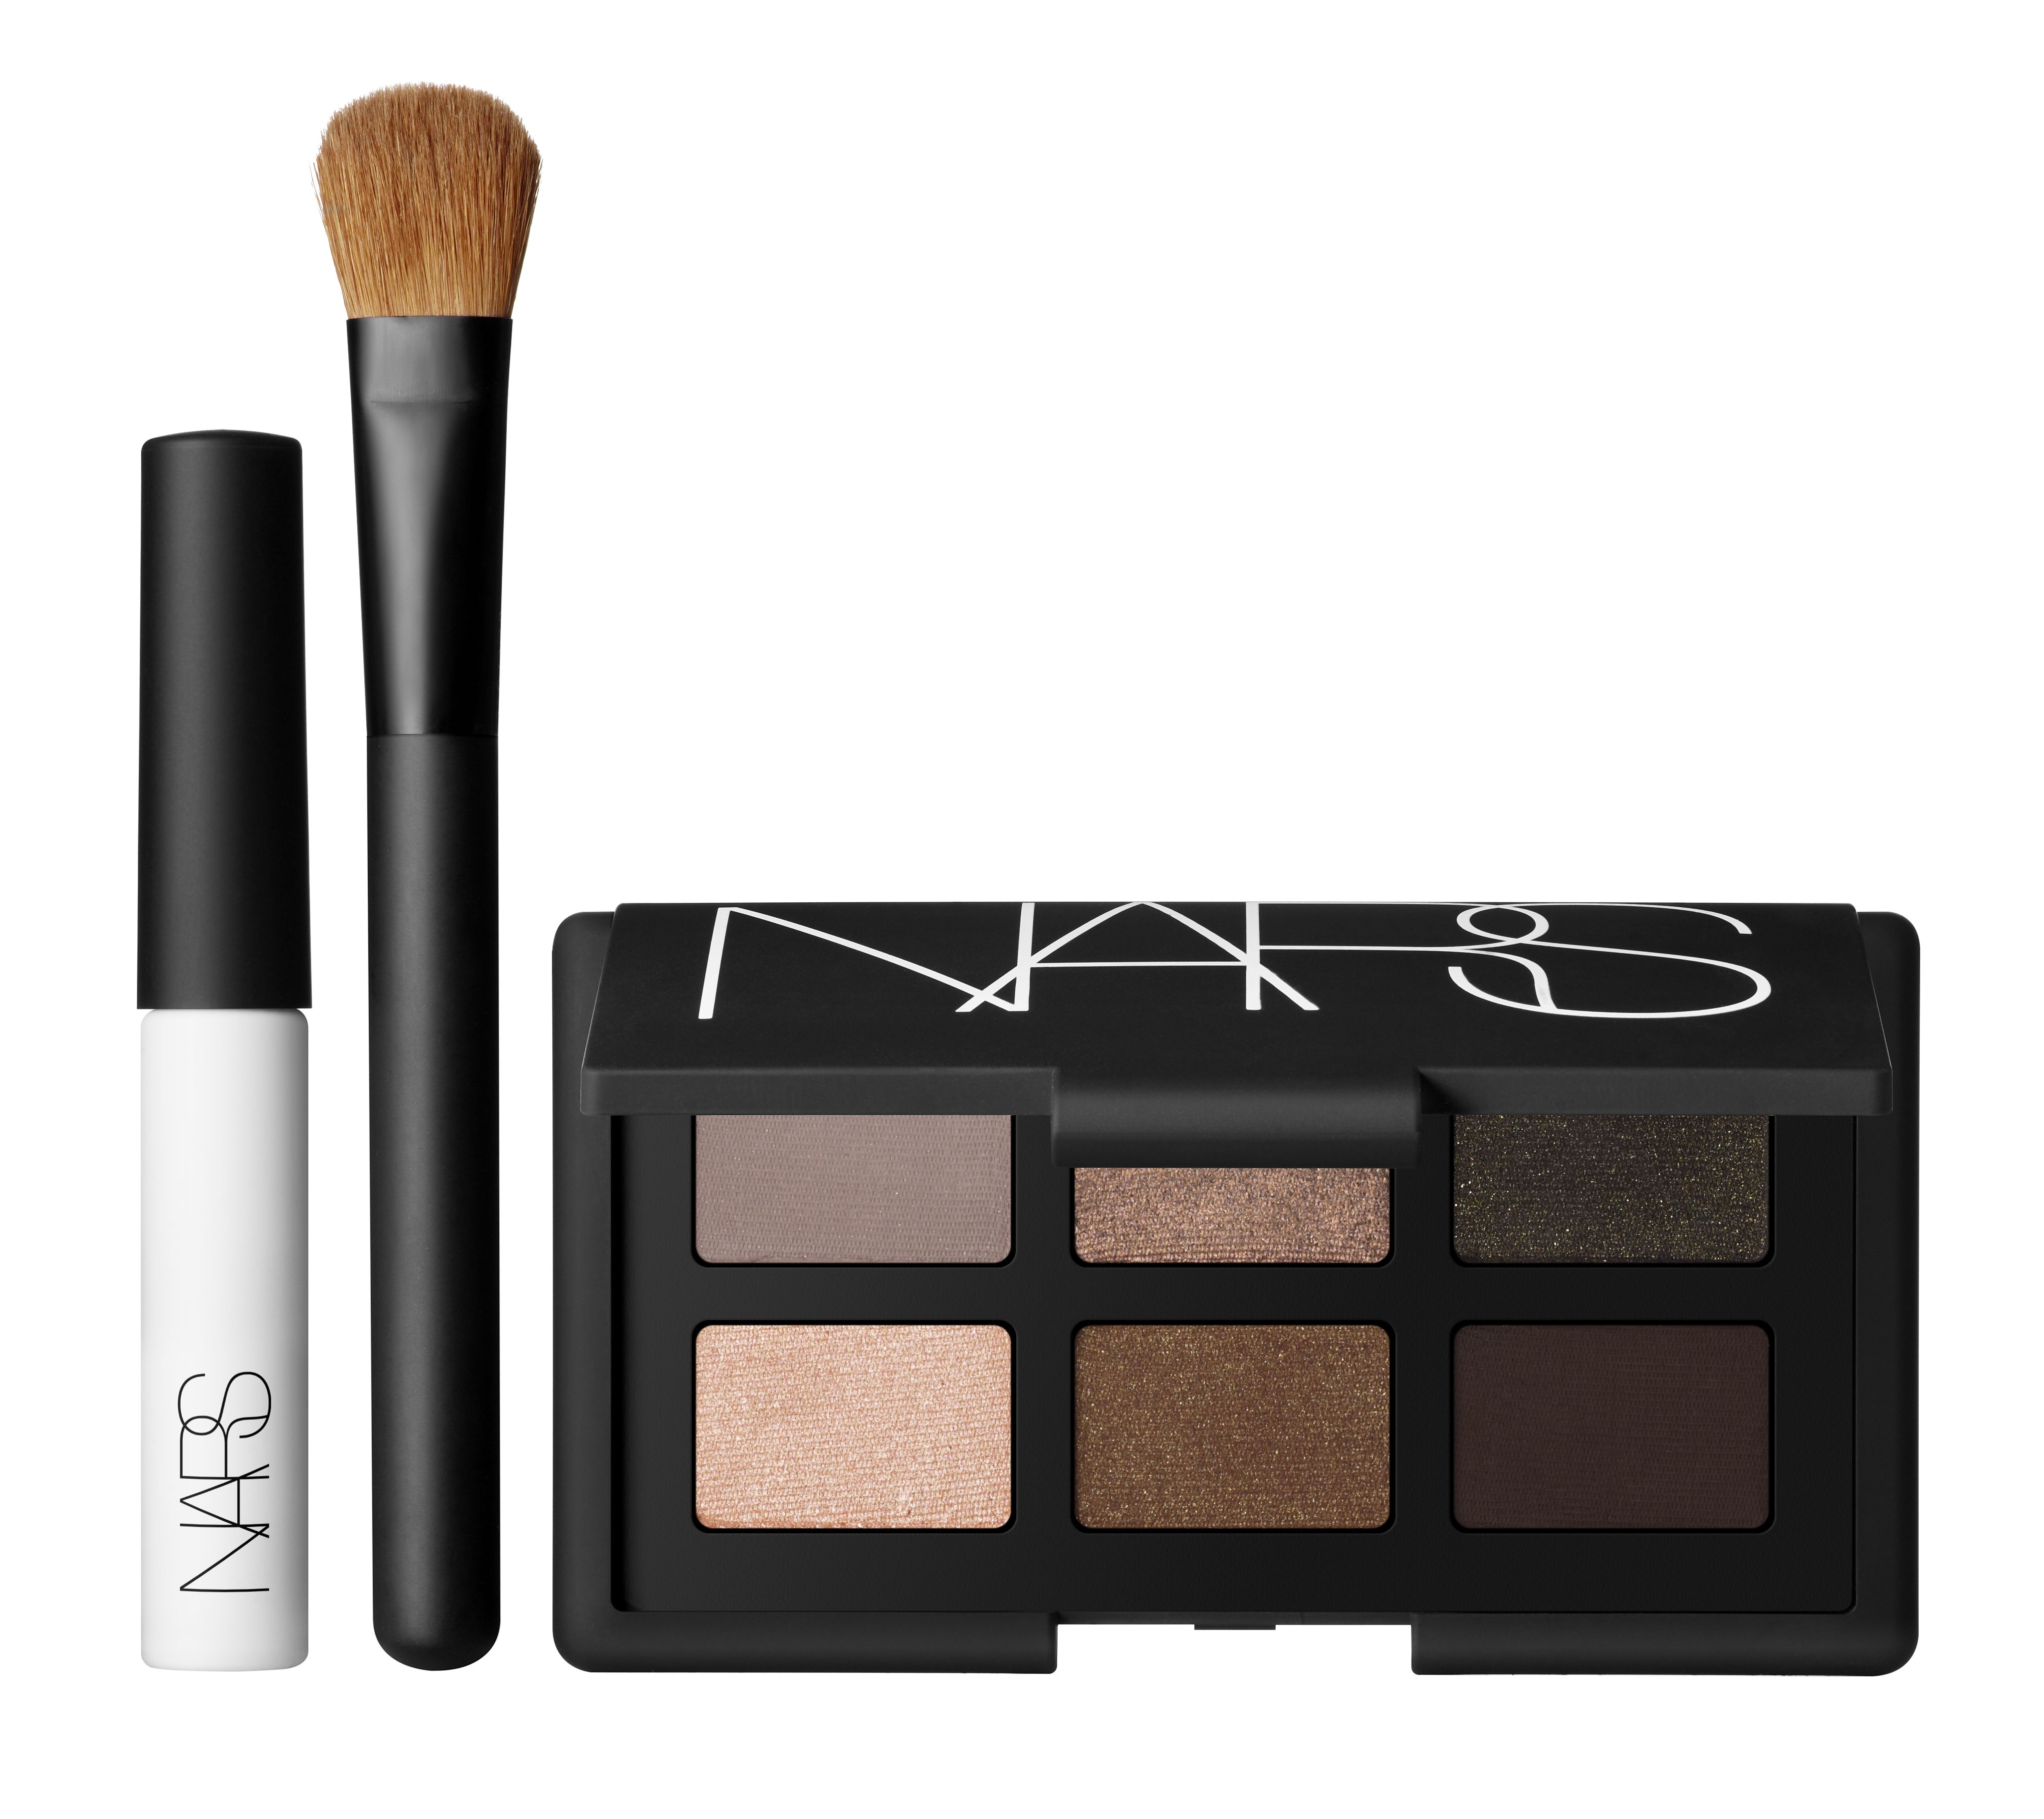 NARS Limited Edition New York Collection